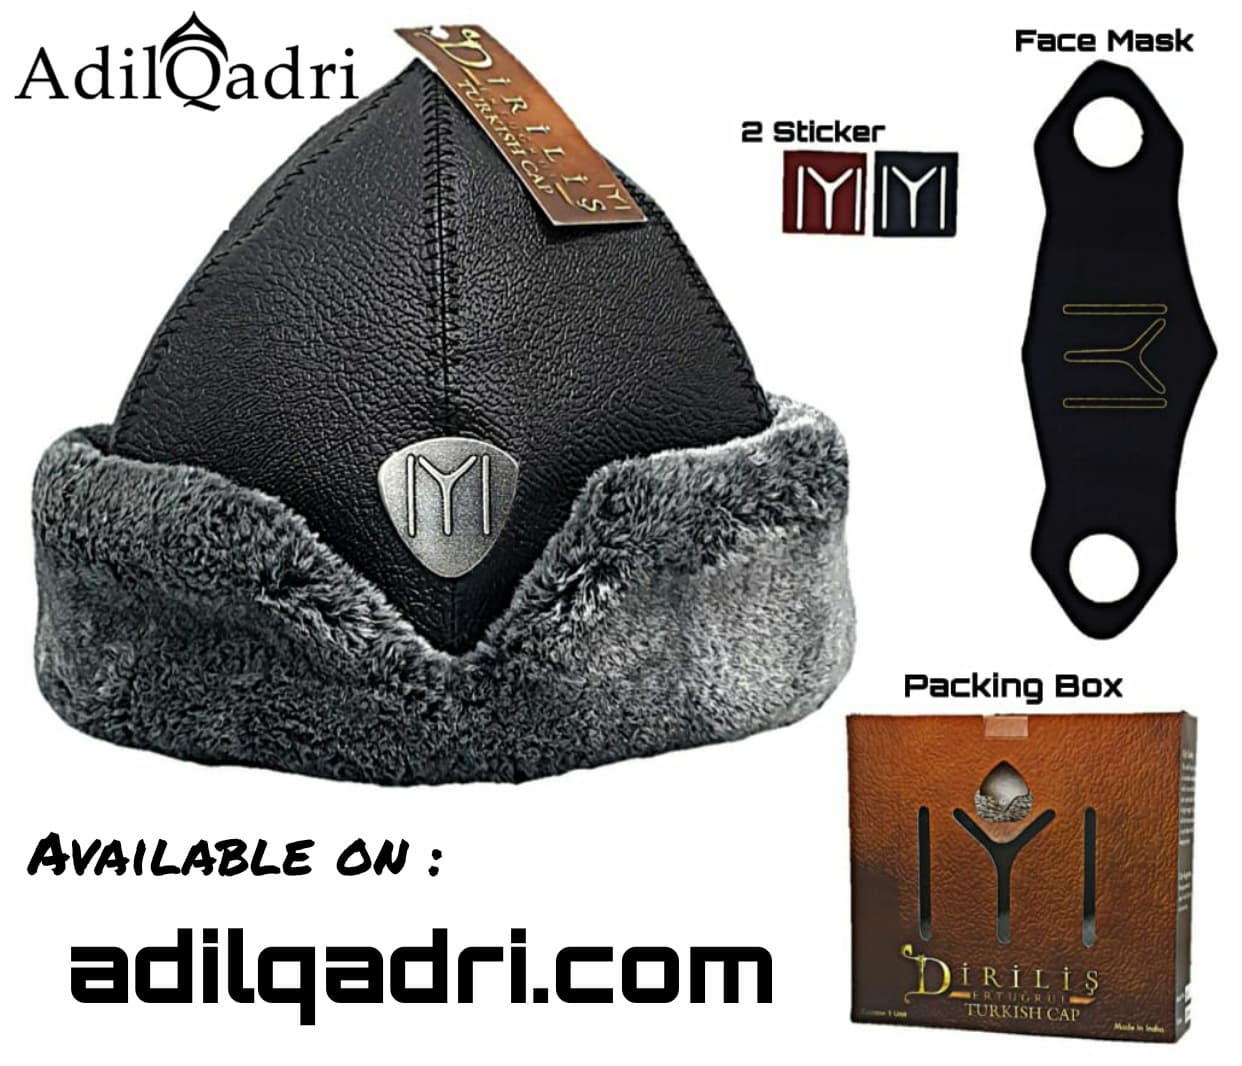 Adilqadri Ertugrul Cap Winter Bork hat High Quality Hand Made Model D5 With Free Face Mask  AdilQadri Series 2020